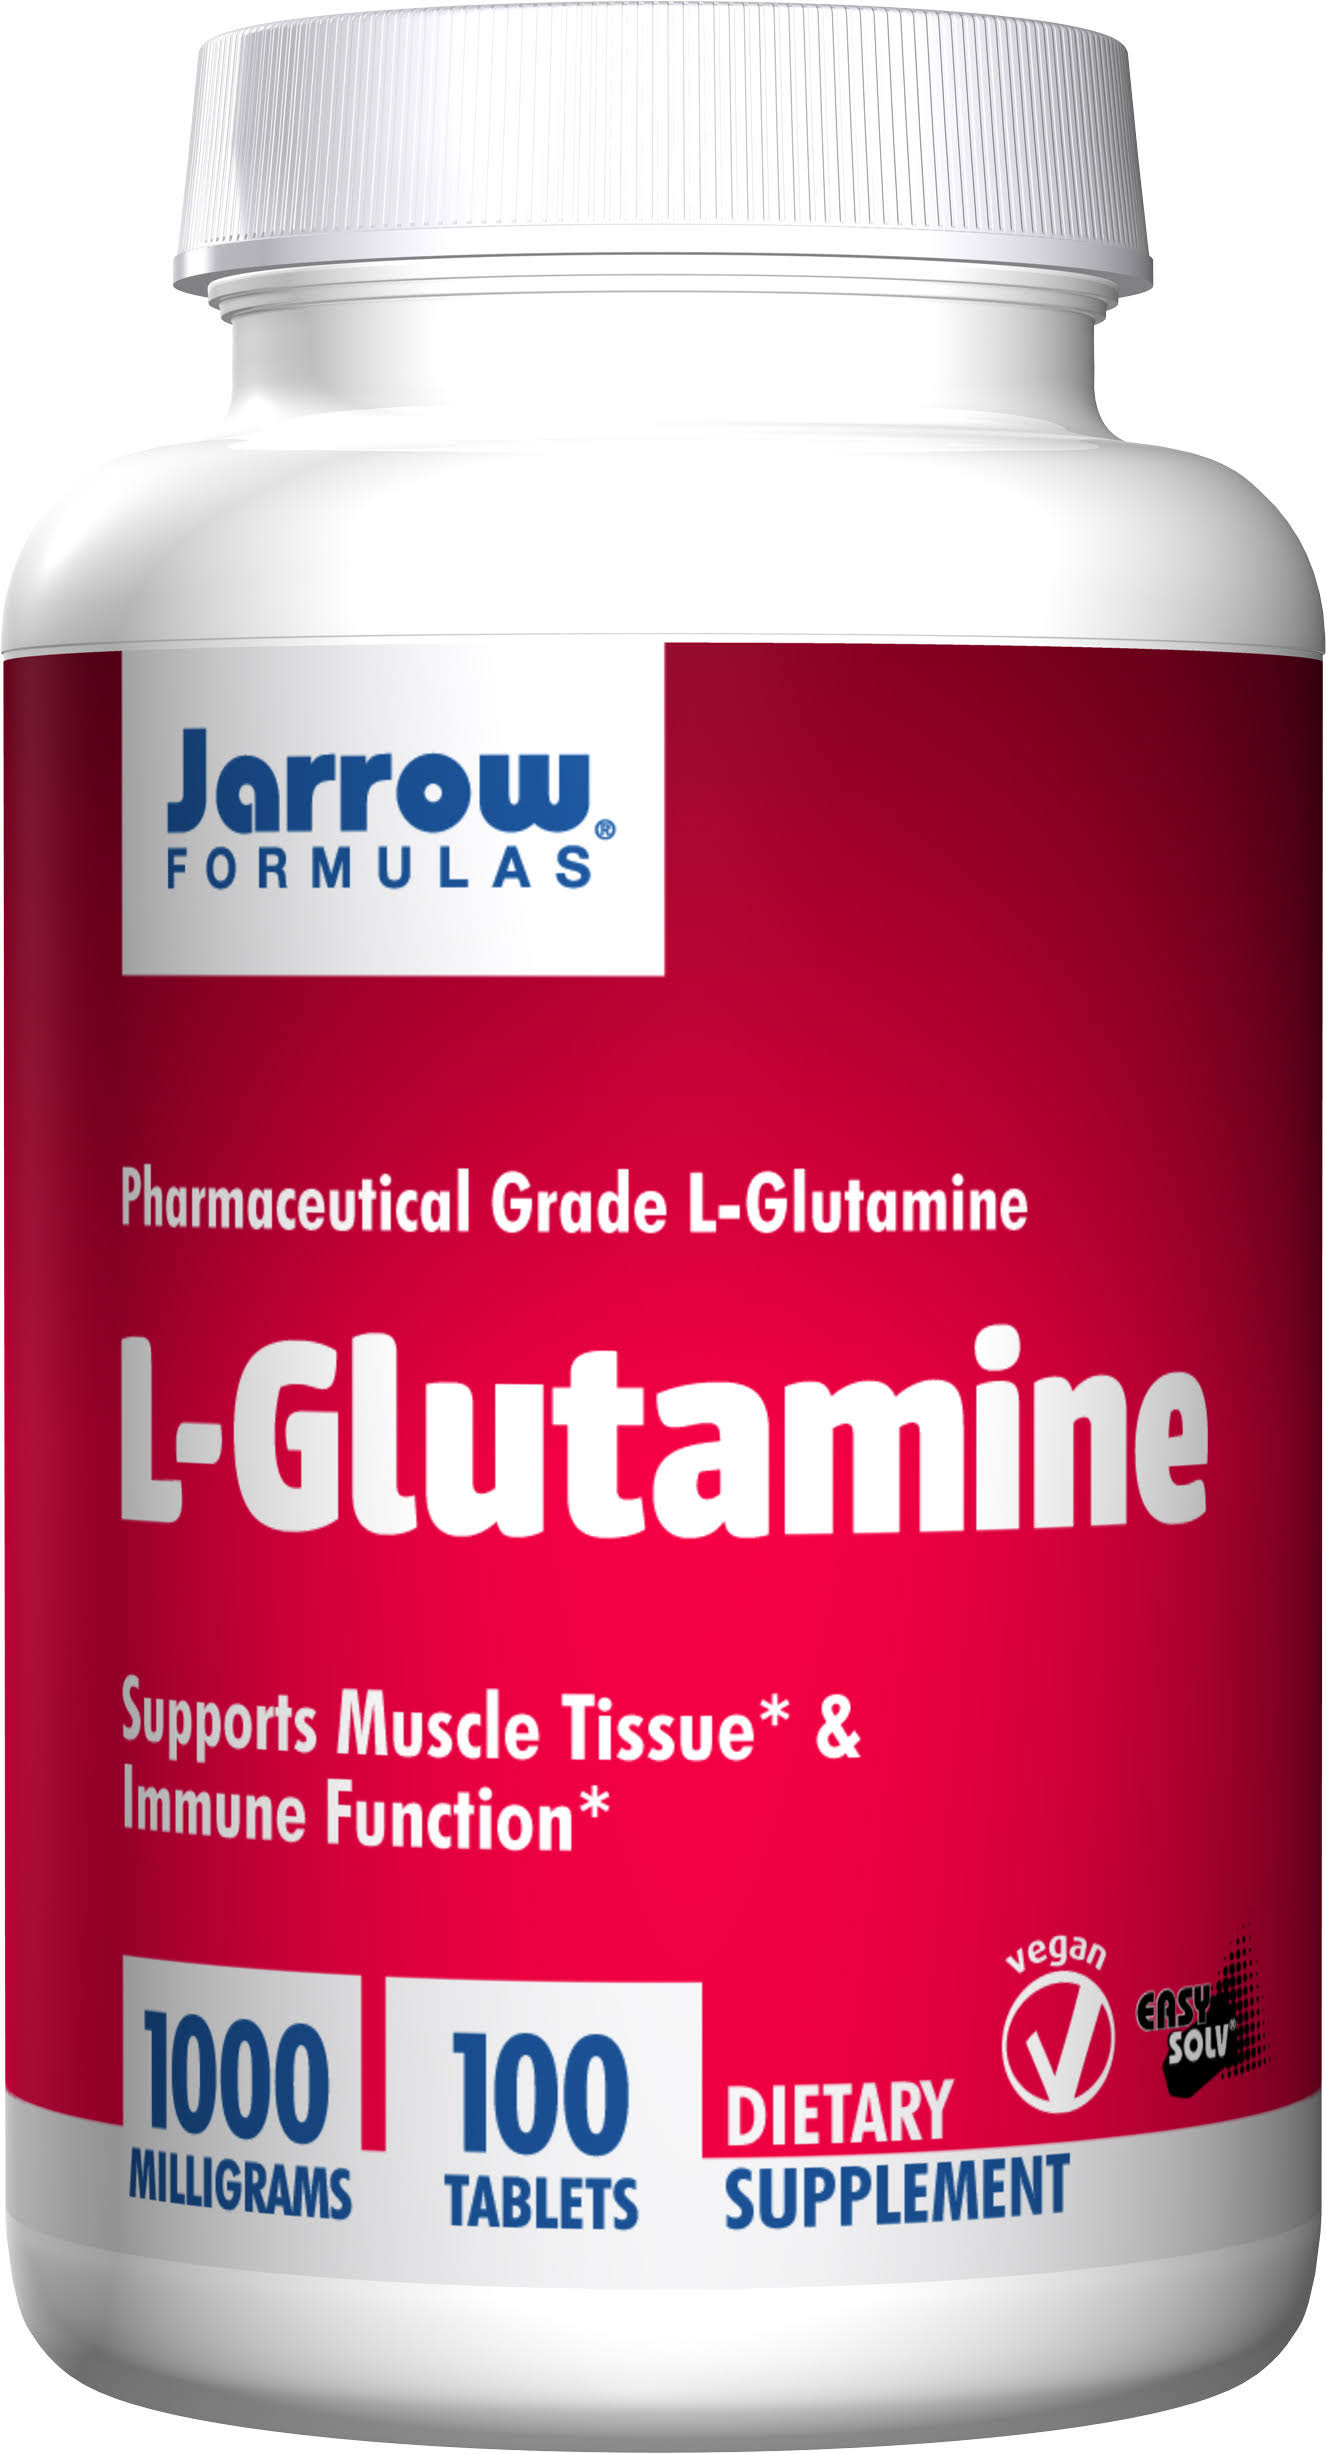 Jarrow Formulas L Glutamine Dietary Supplement - 100 Tablets, 1000mg